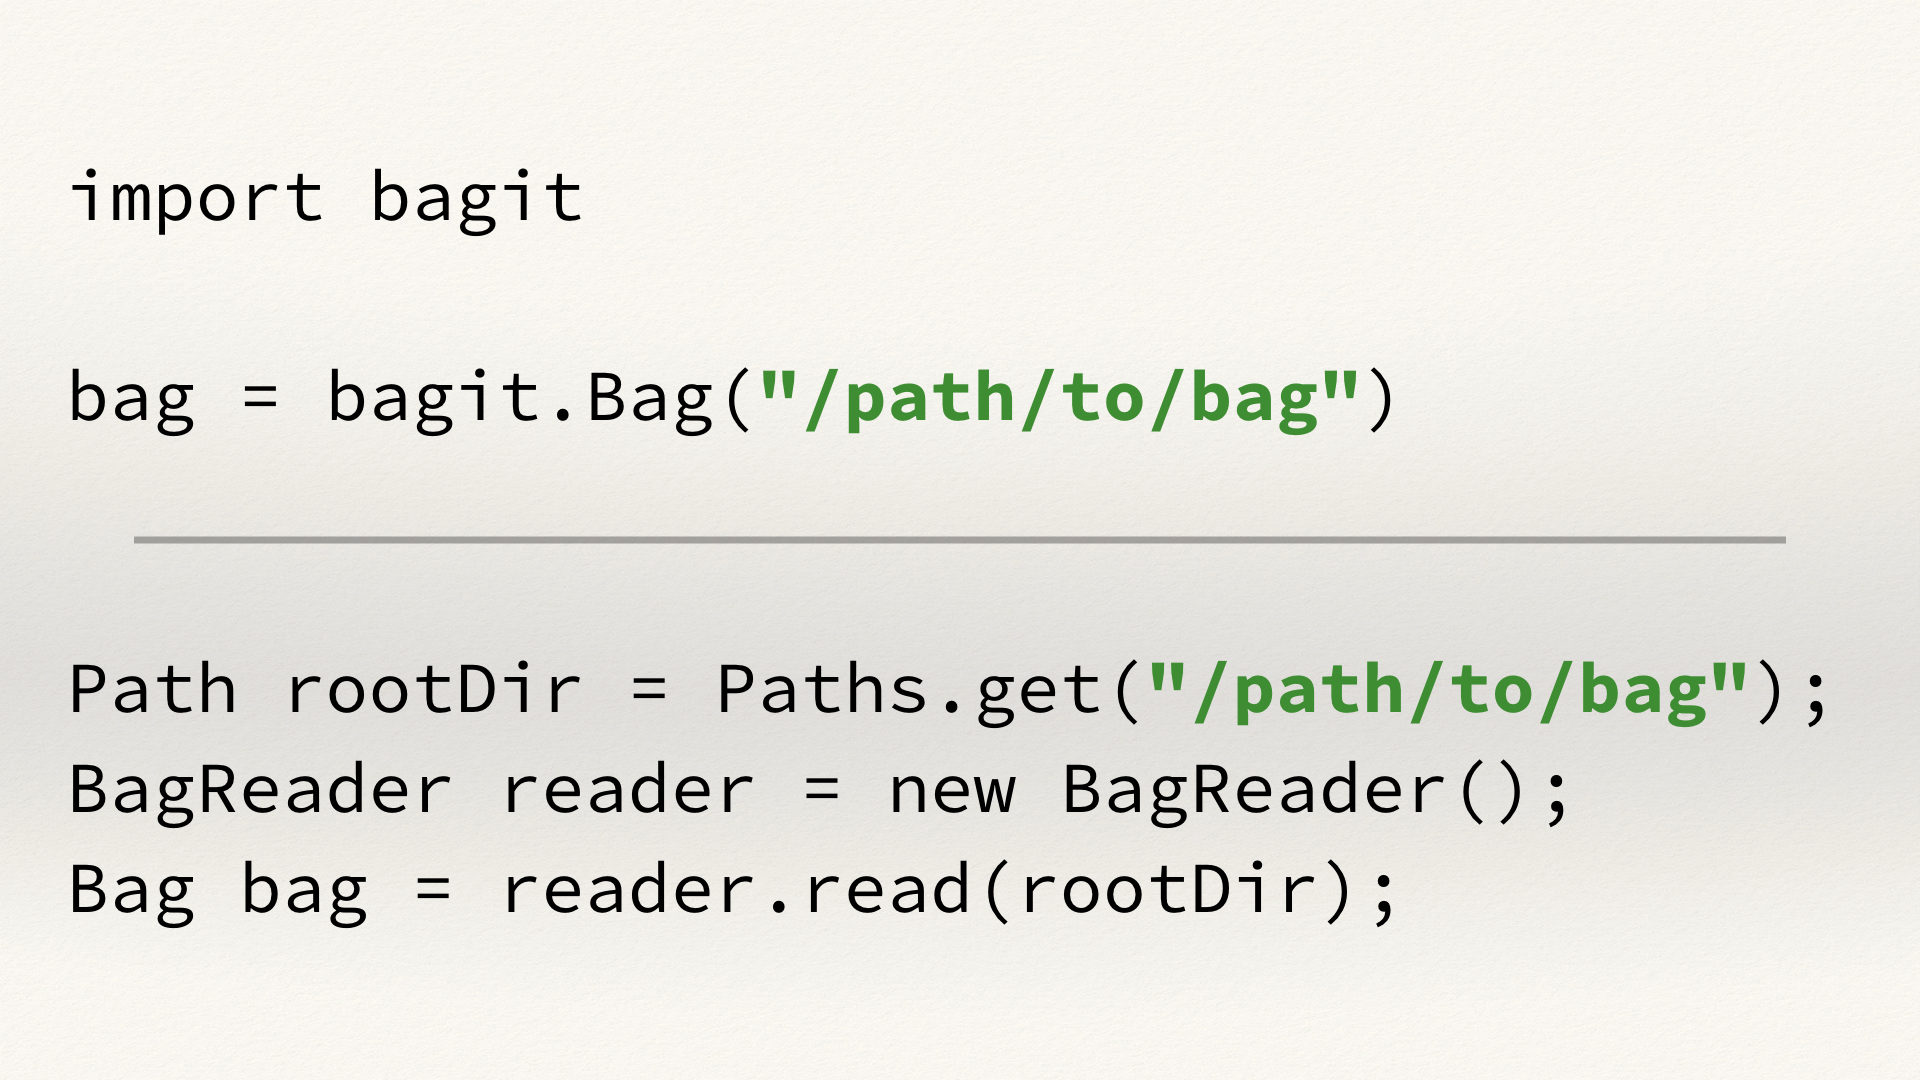 Examples of code from the BagIt libraries in Python and Java. In both cases, the code is using a parameter '/path/to/bag', which is highlighted in green.